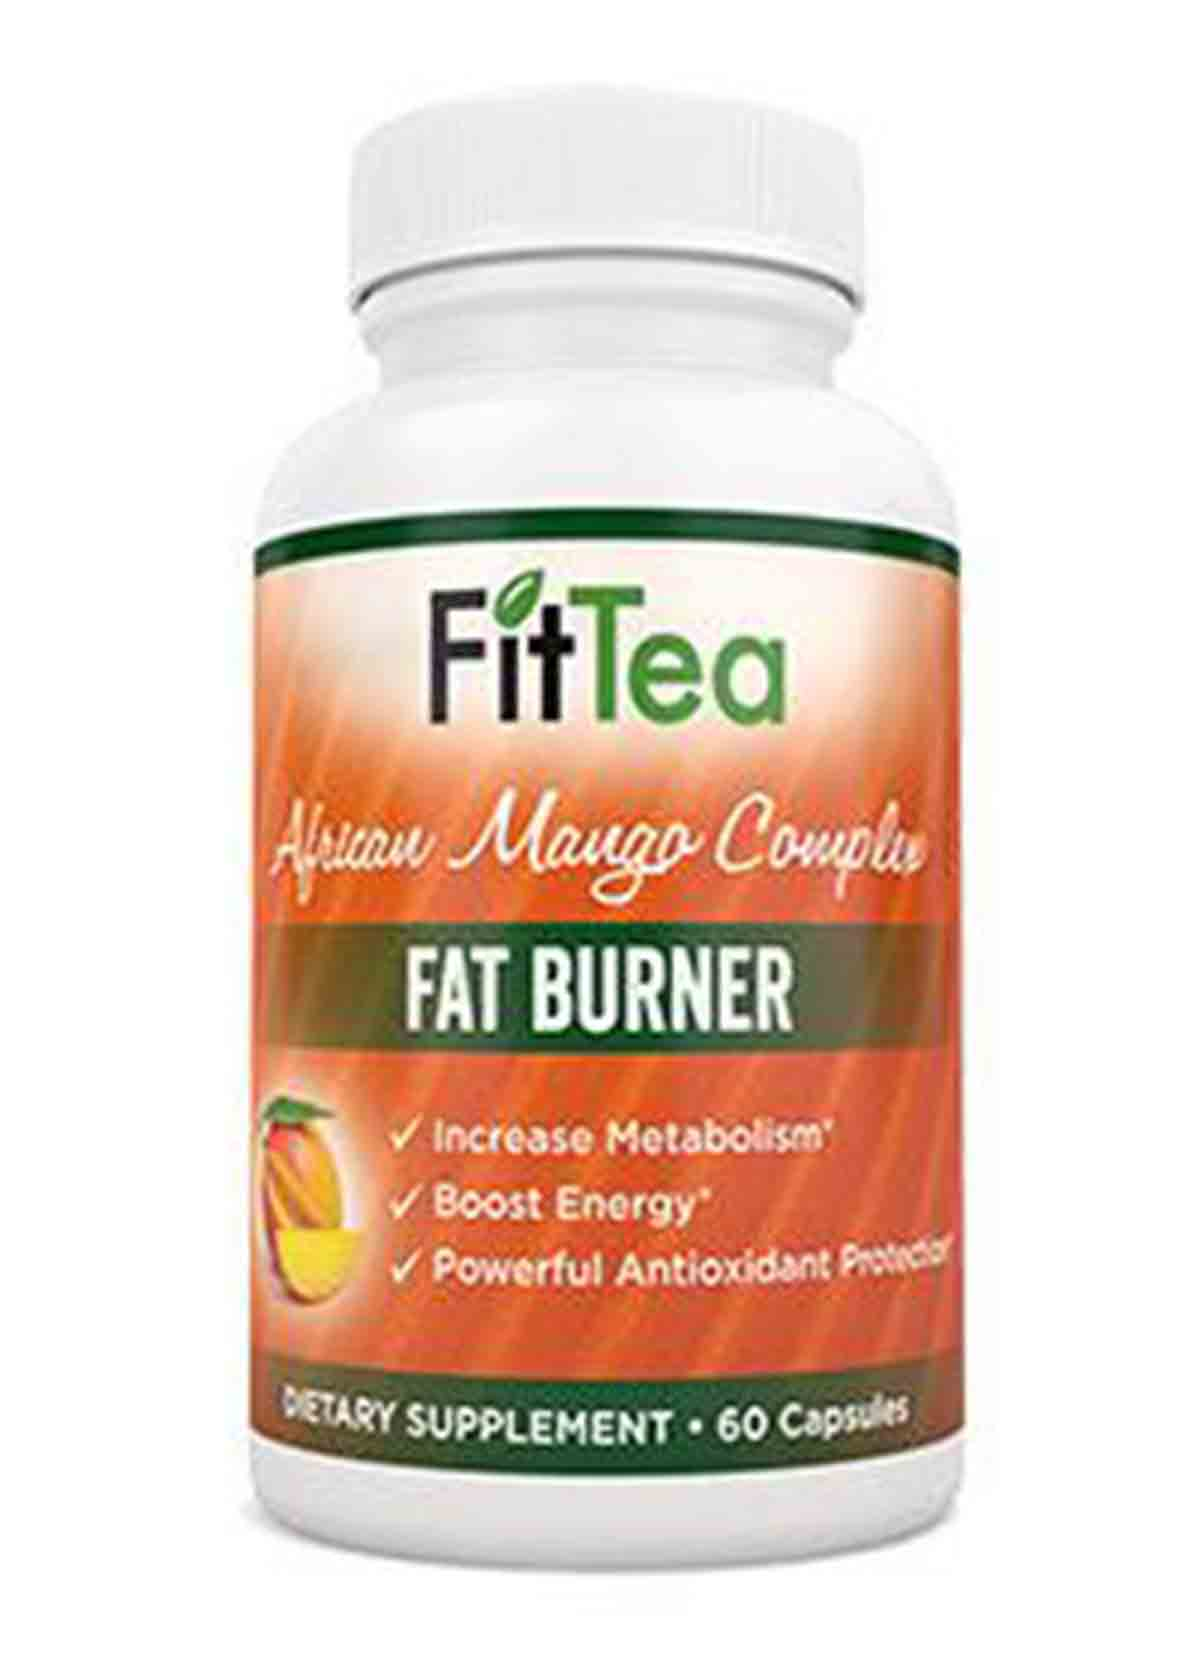 Fit Tea Fat Burner